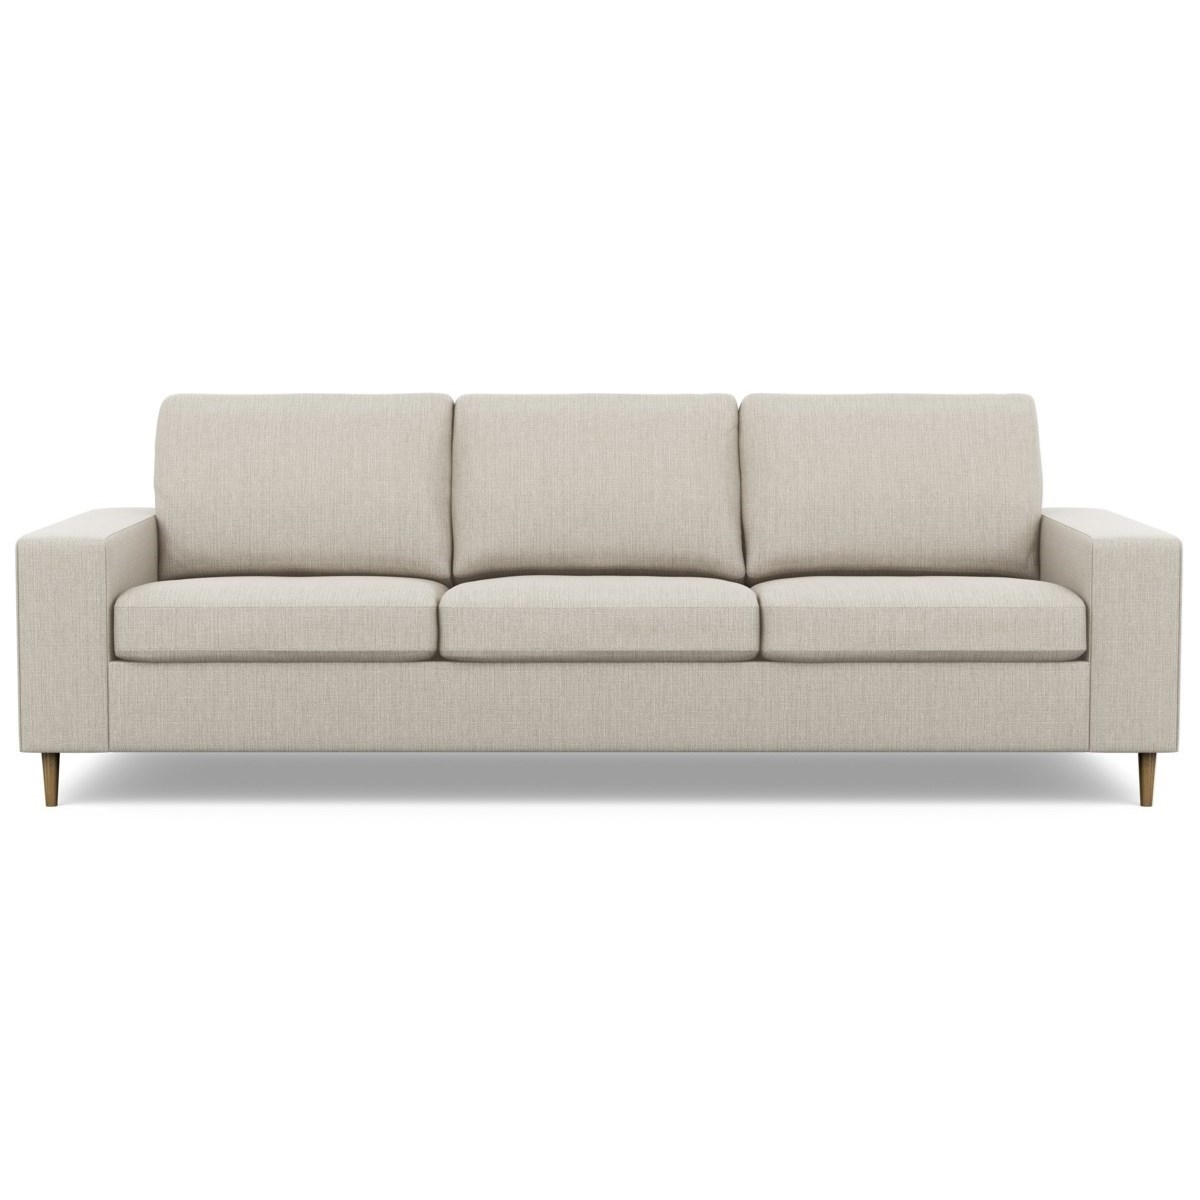 Palliser Inspirations Bello High Leg Contemporary Sofa With Wide Track Arms And High Legs Reeds Furniture Sofas